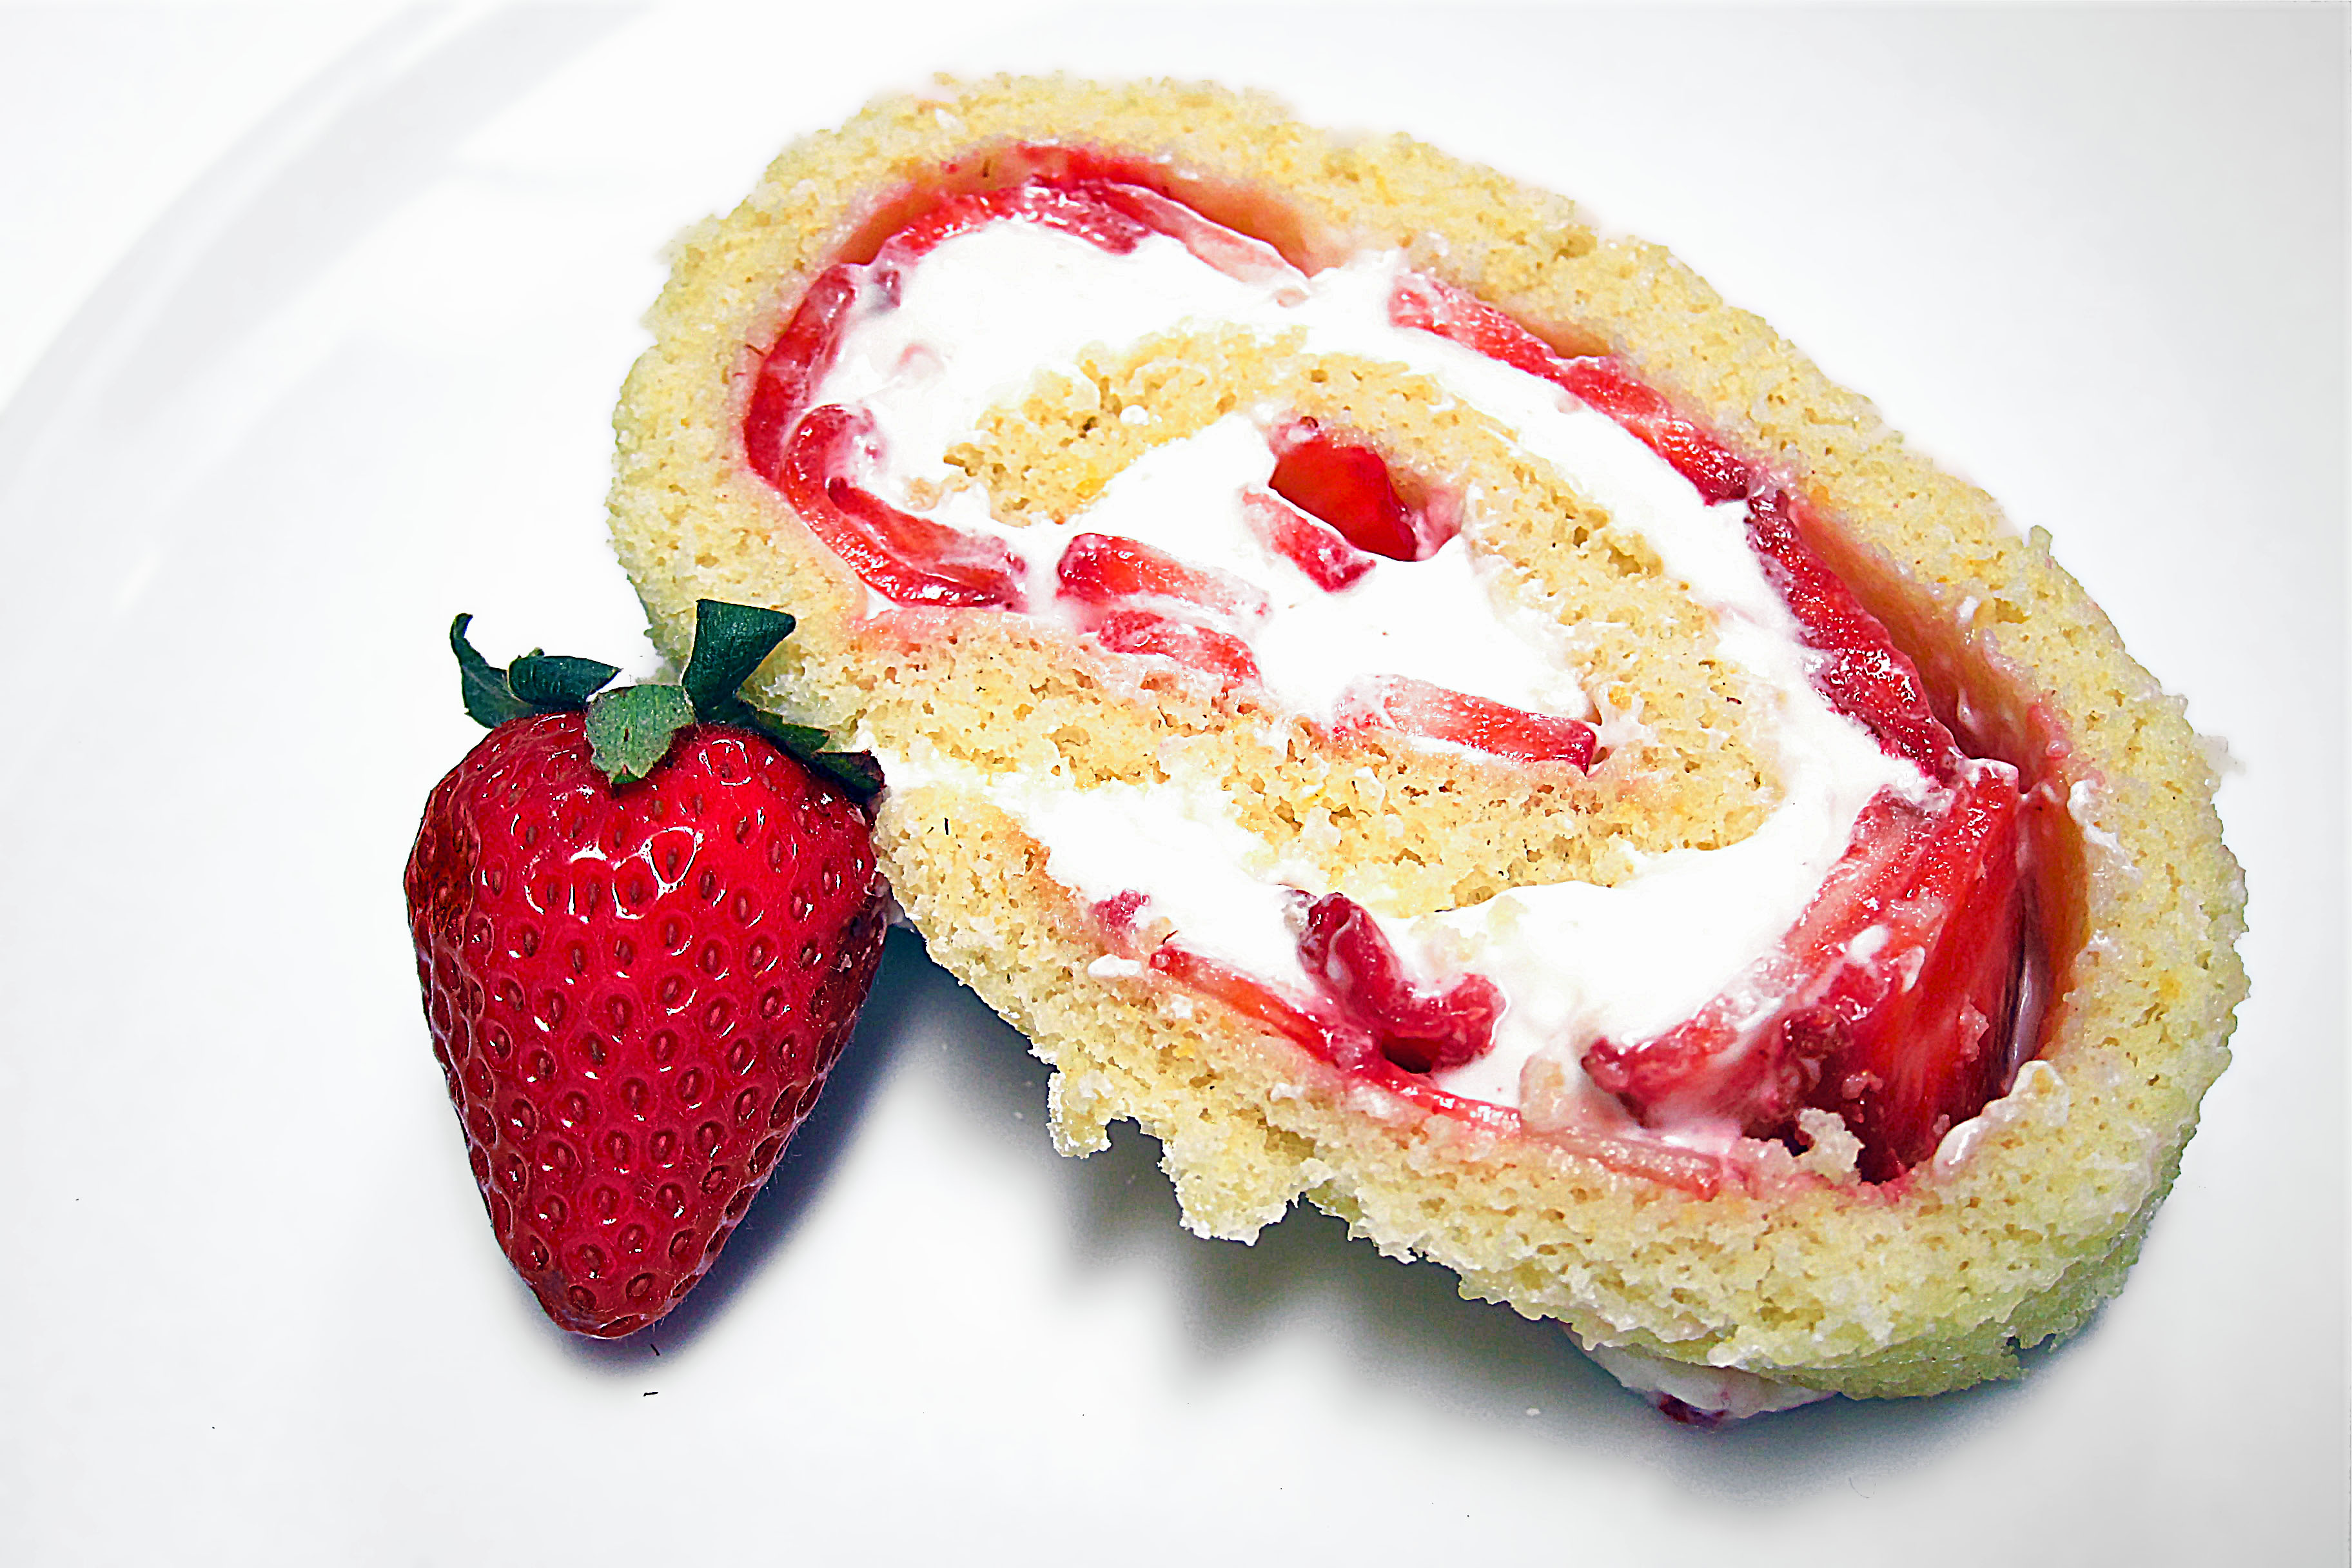 Strawberry Cheesecake Jelly Roll Cake | A Colorado food, life and ...